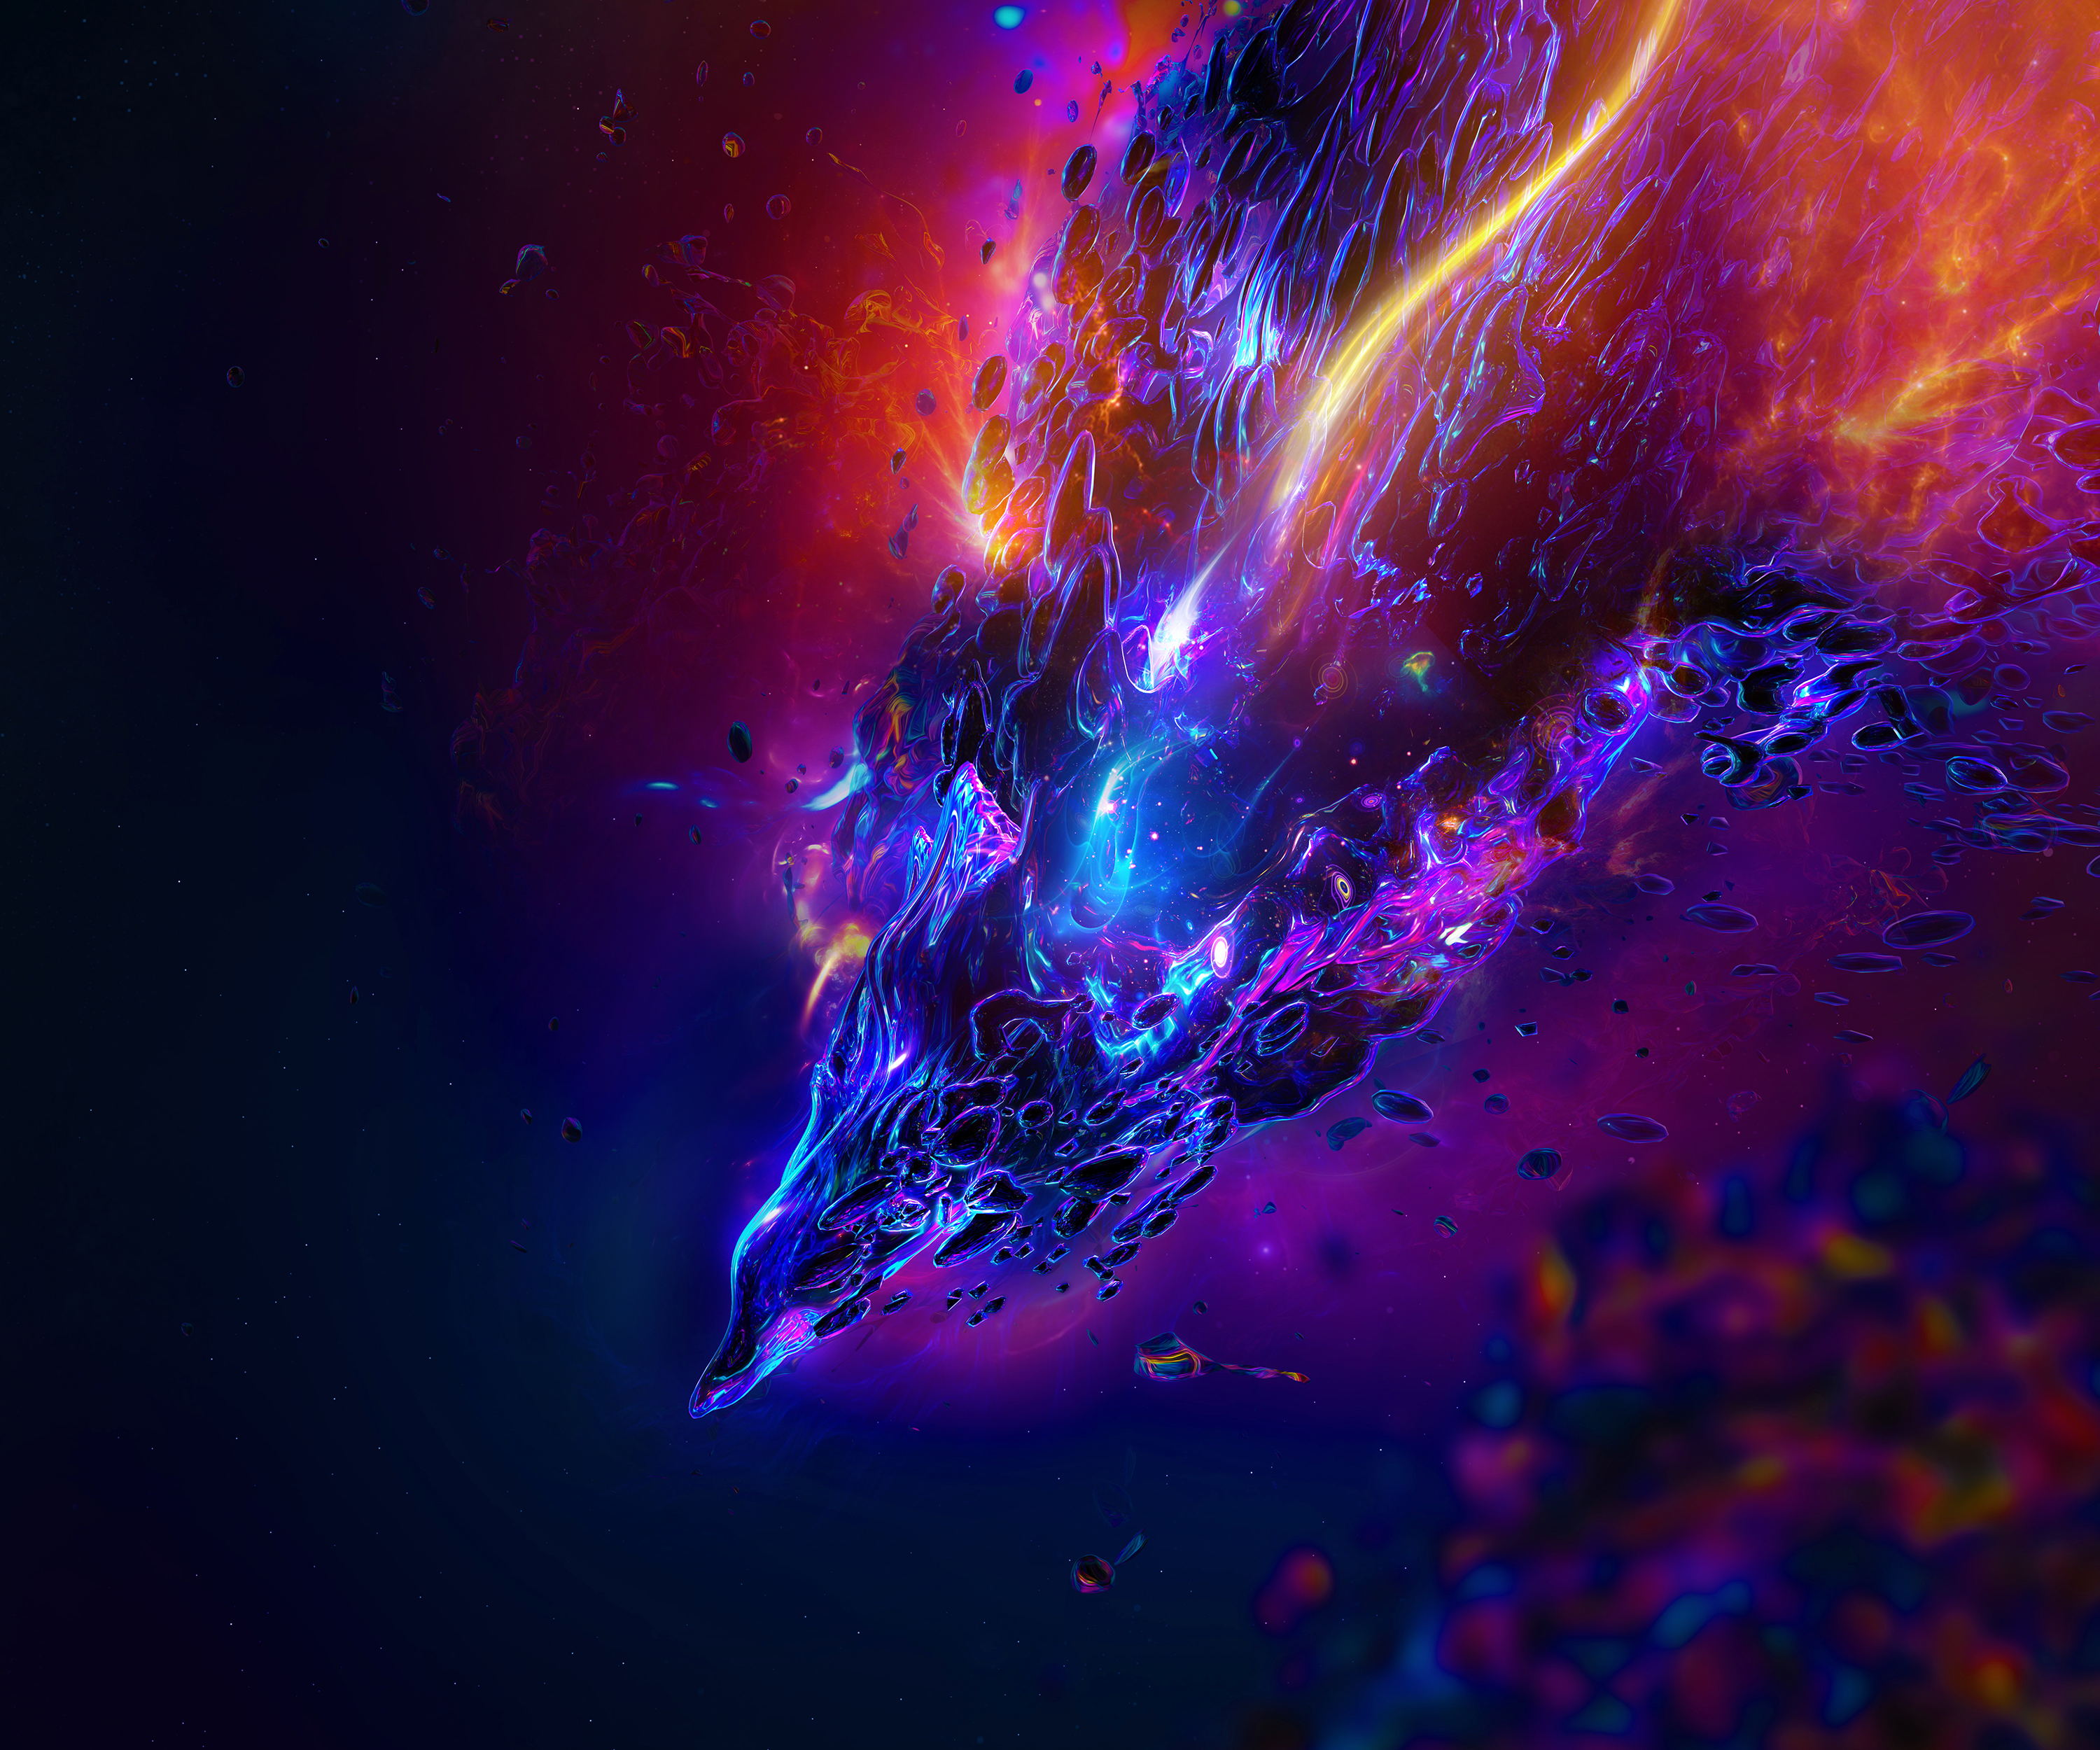 Abstract Universe Neon Lights Wallpaper Id4423